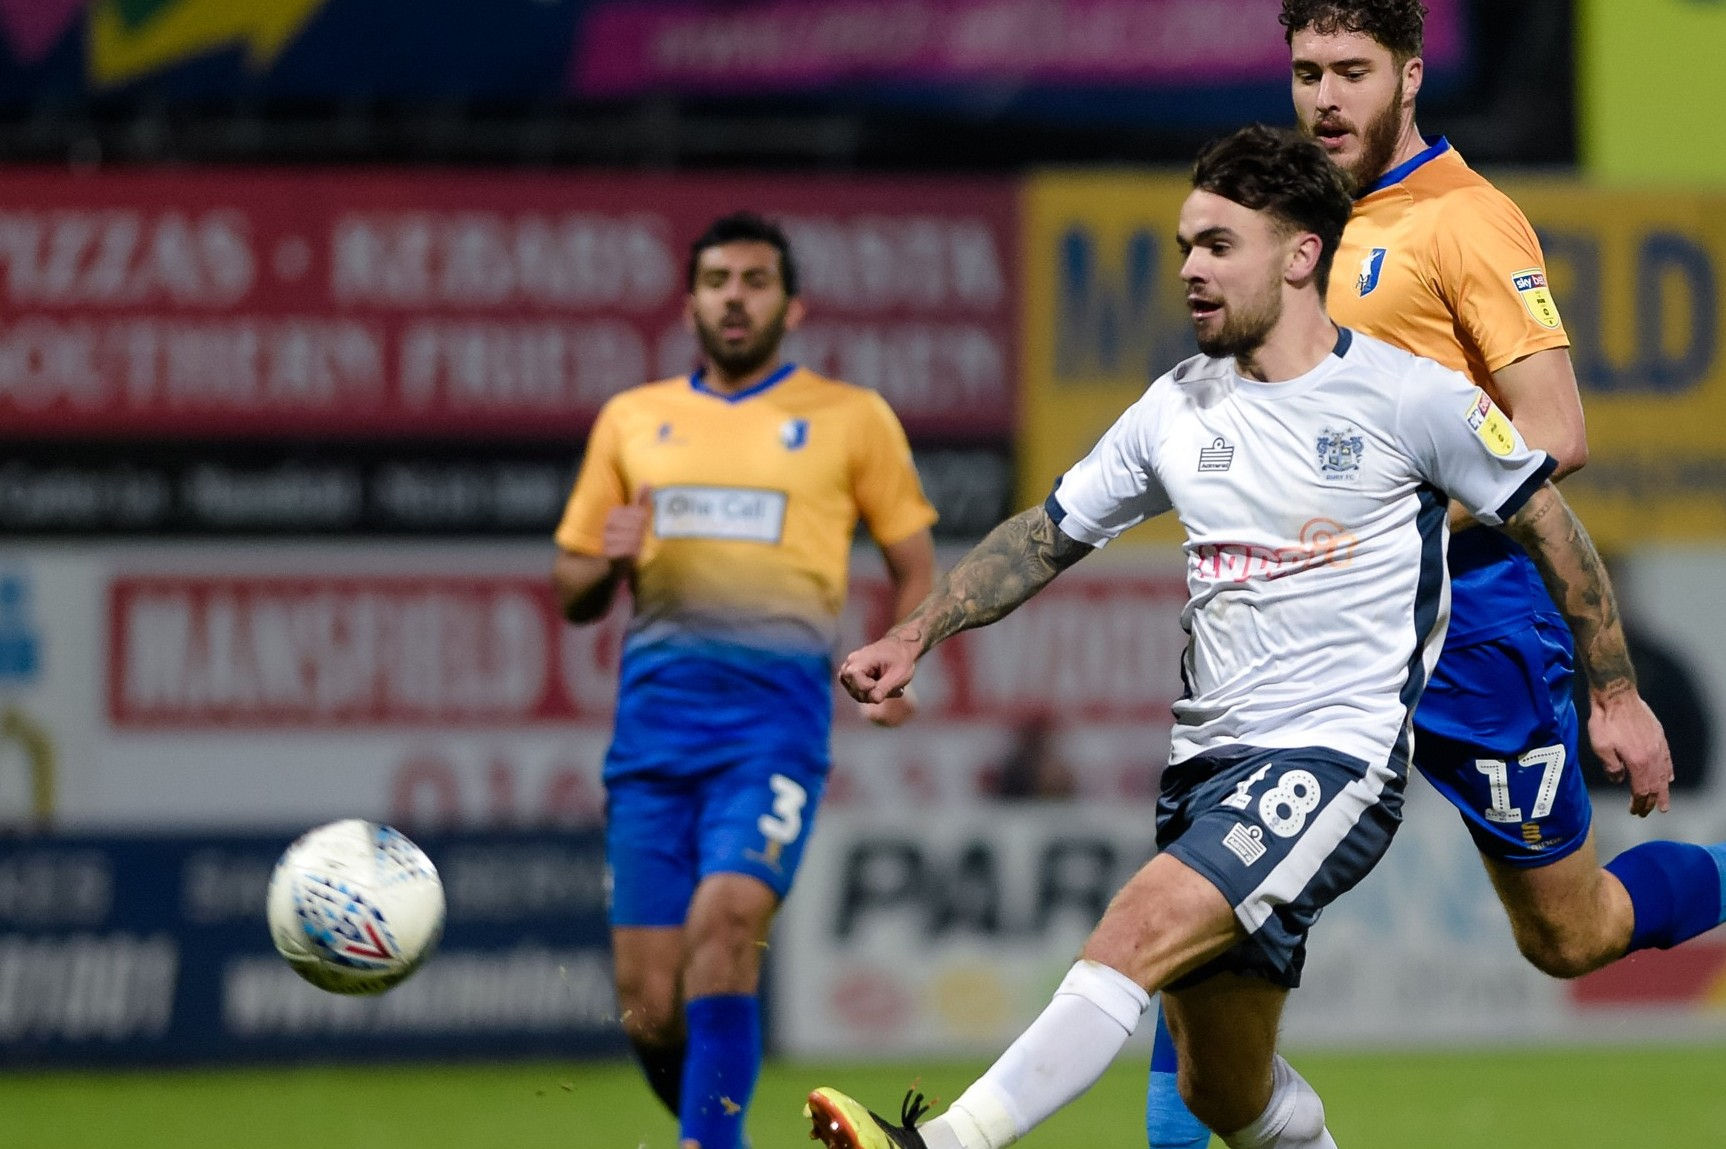 Lowe pleased with Shakers squad options as festive period looms on horizon